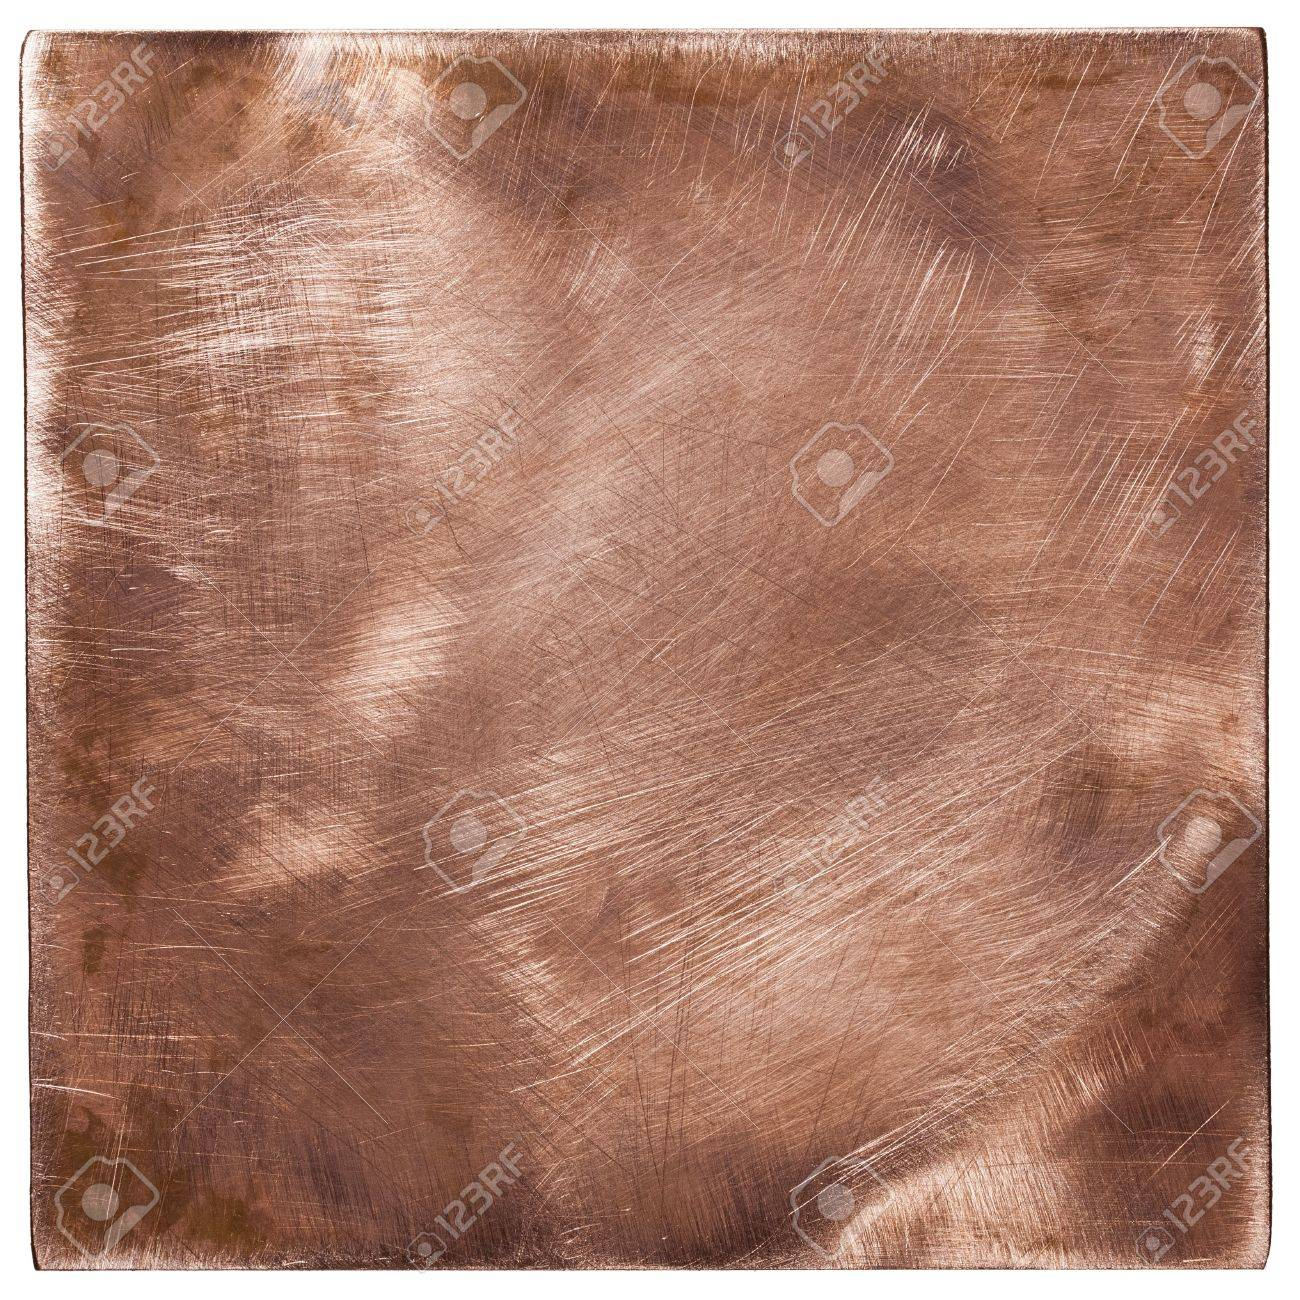 Copper plate textures, old metal backgrounds, isolated Stock Photo - 17977287